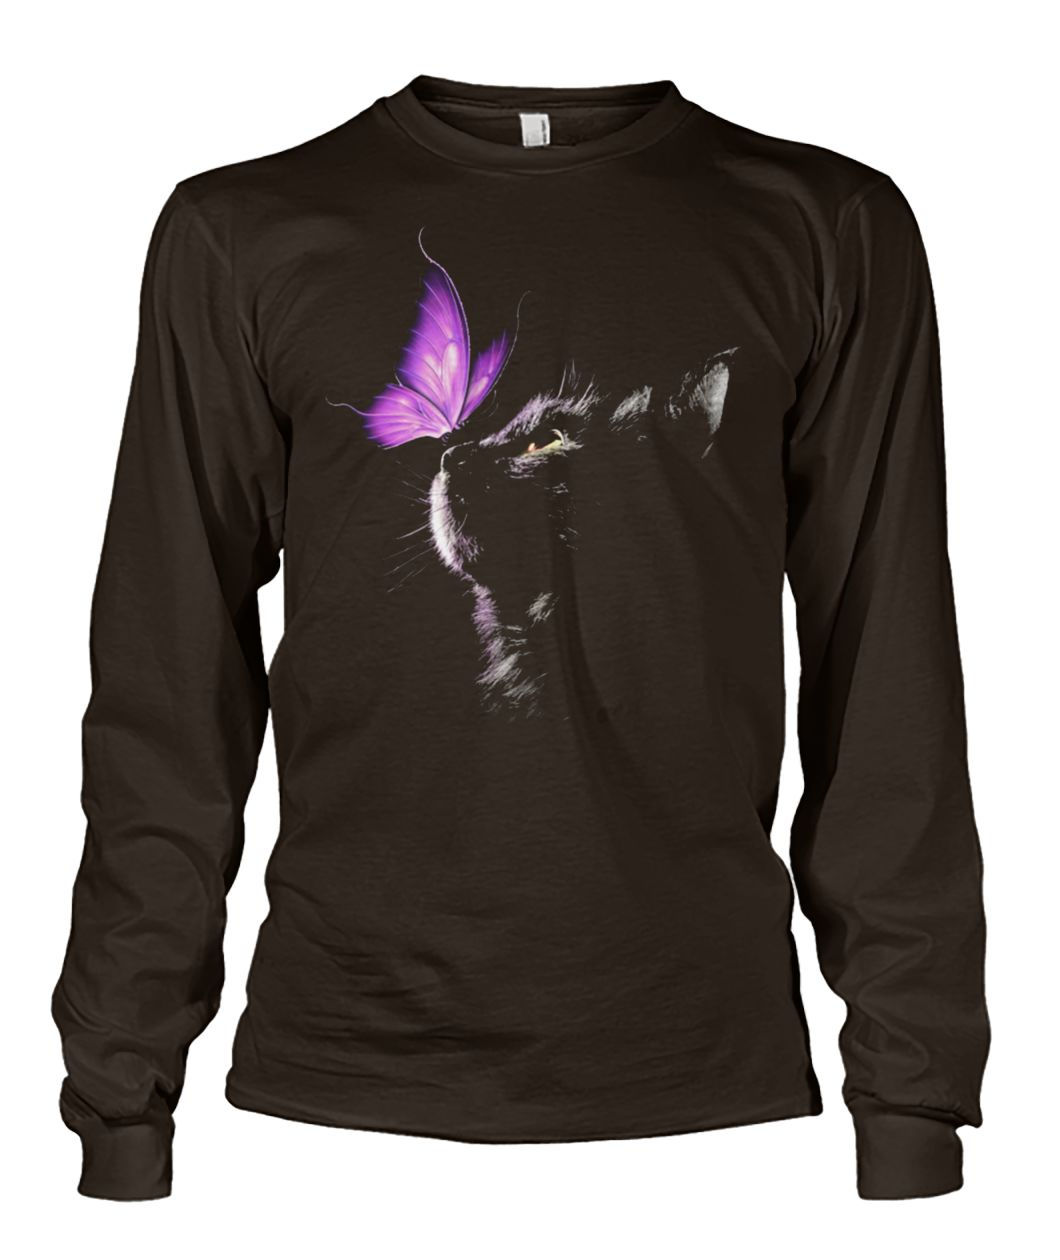 Cat and butterfly unisex long sleeve